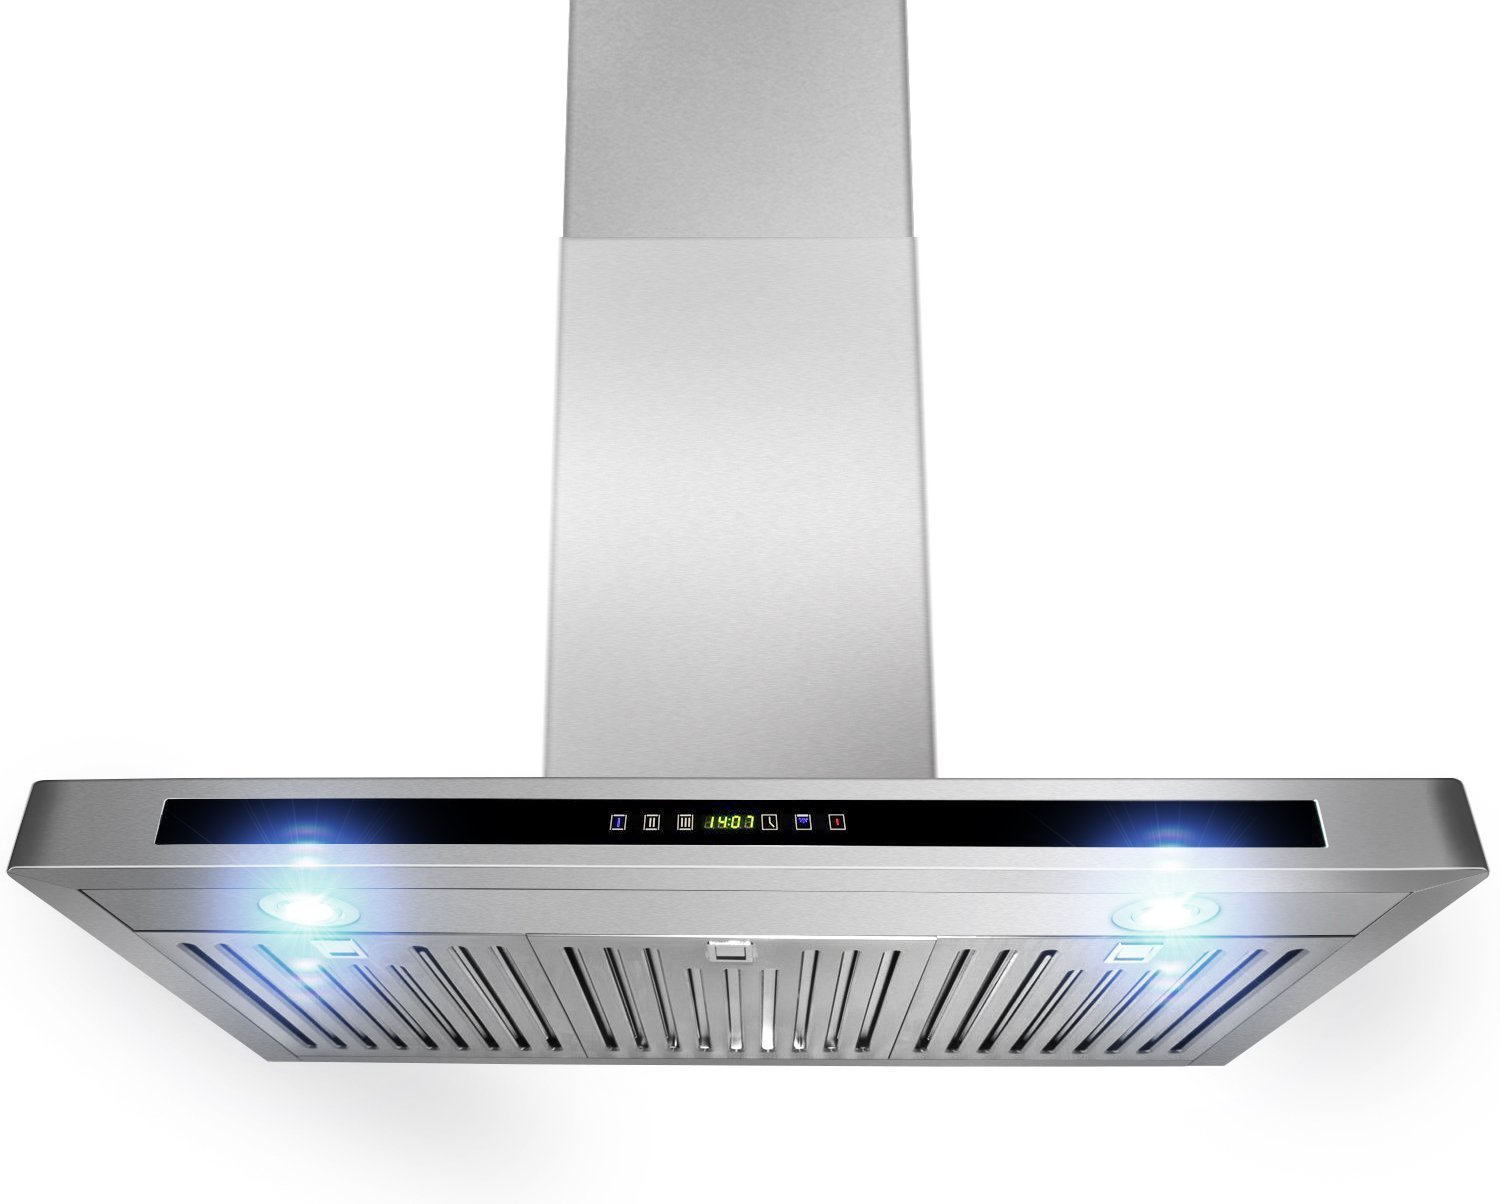 GOLDEN VANTAGE New 30 European Style Wall Mount Stainless Steel Range Hood Vent Touch Sensor Control GV-H503A-75